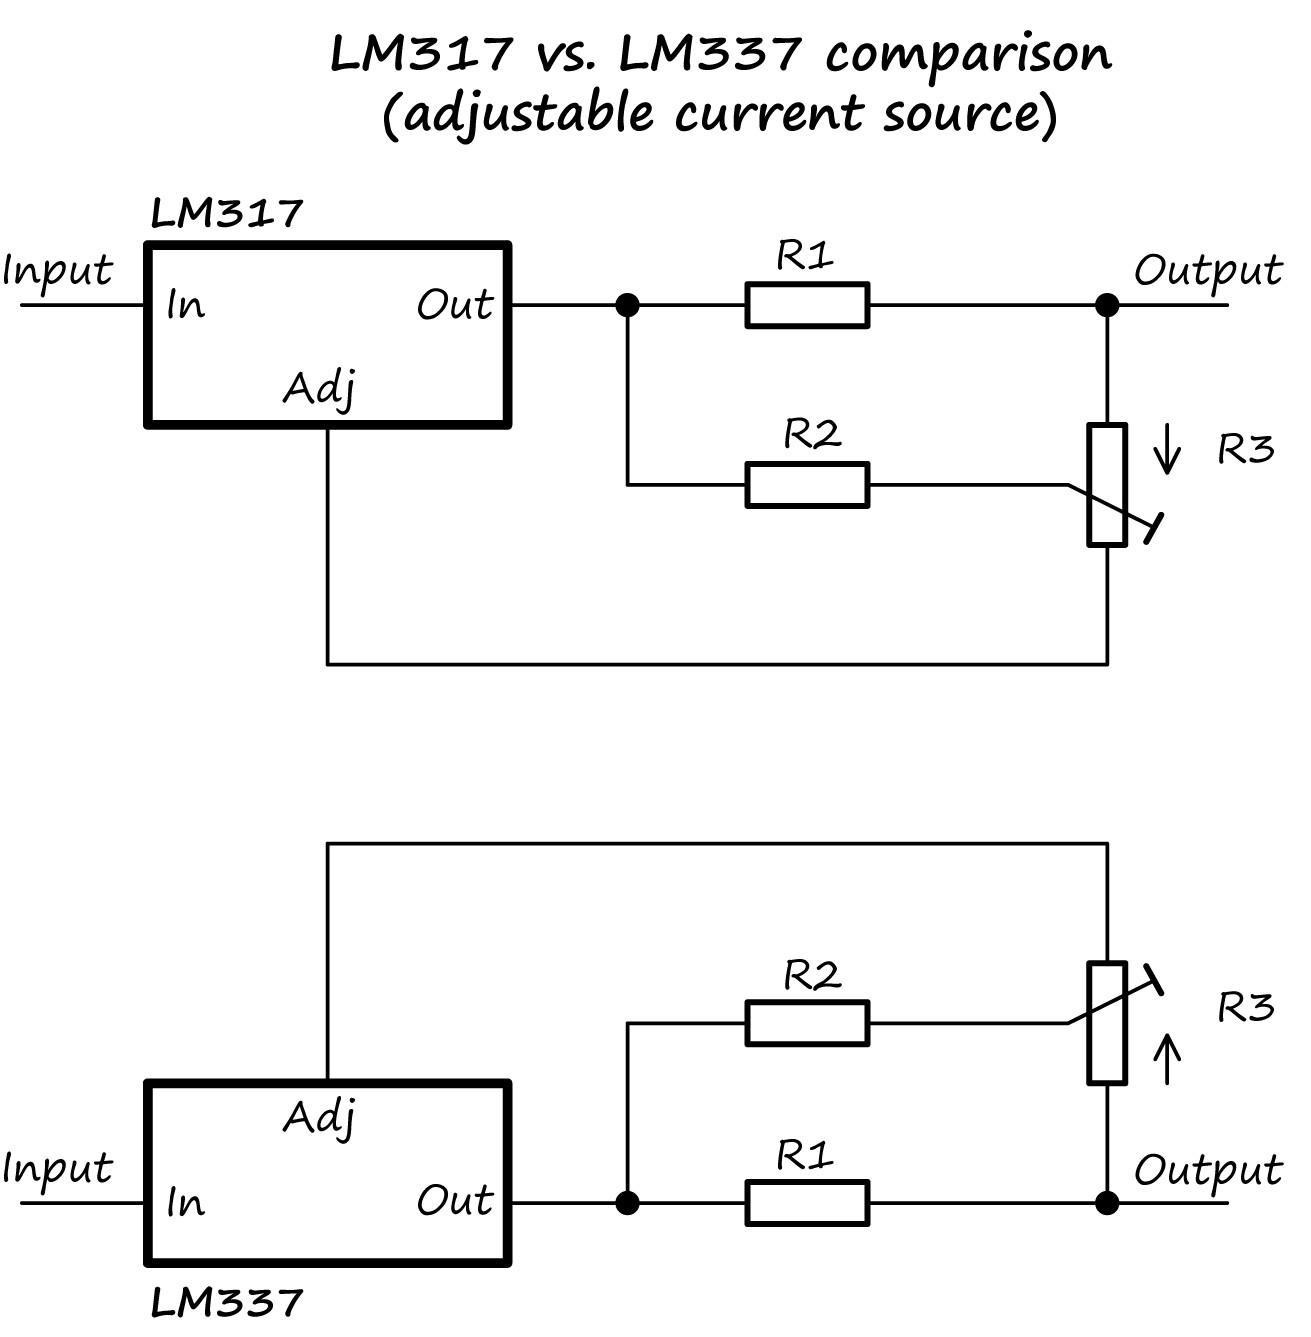 hight resolution of i ve shown both circuits below you can see how the lm337 circuit has the same connections i ve just flipped it upside down for ease of viewing